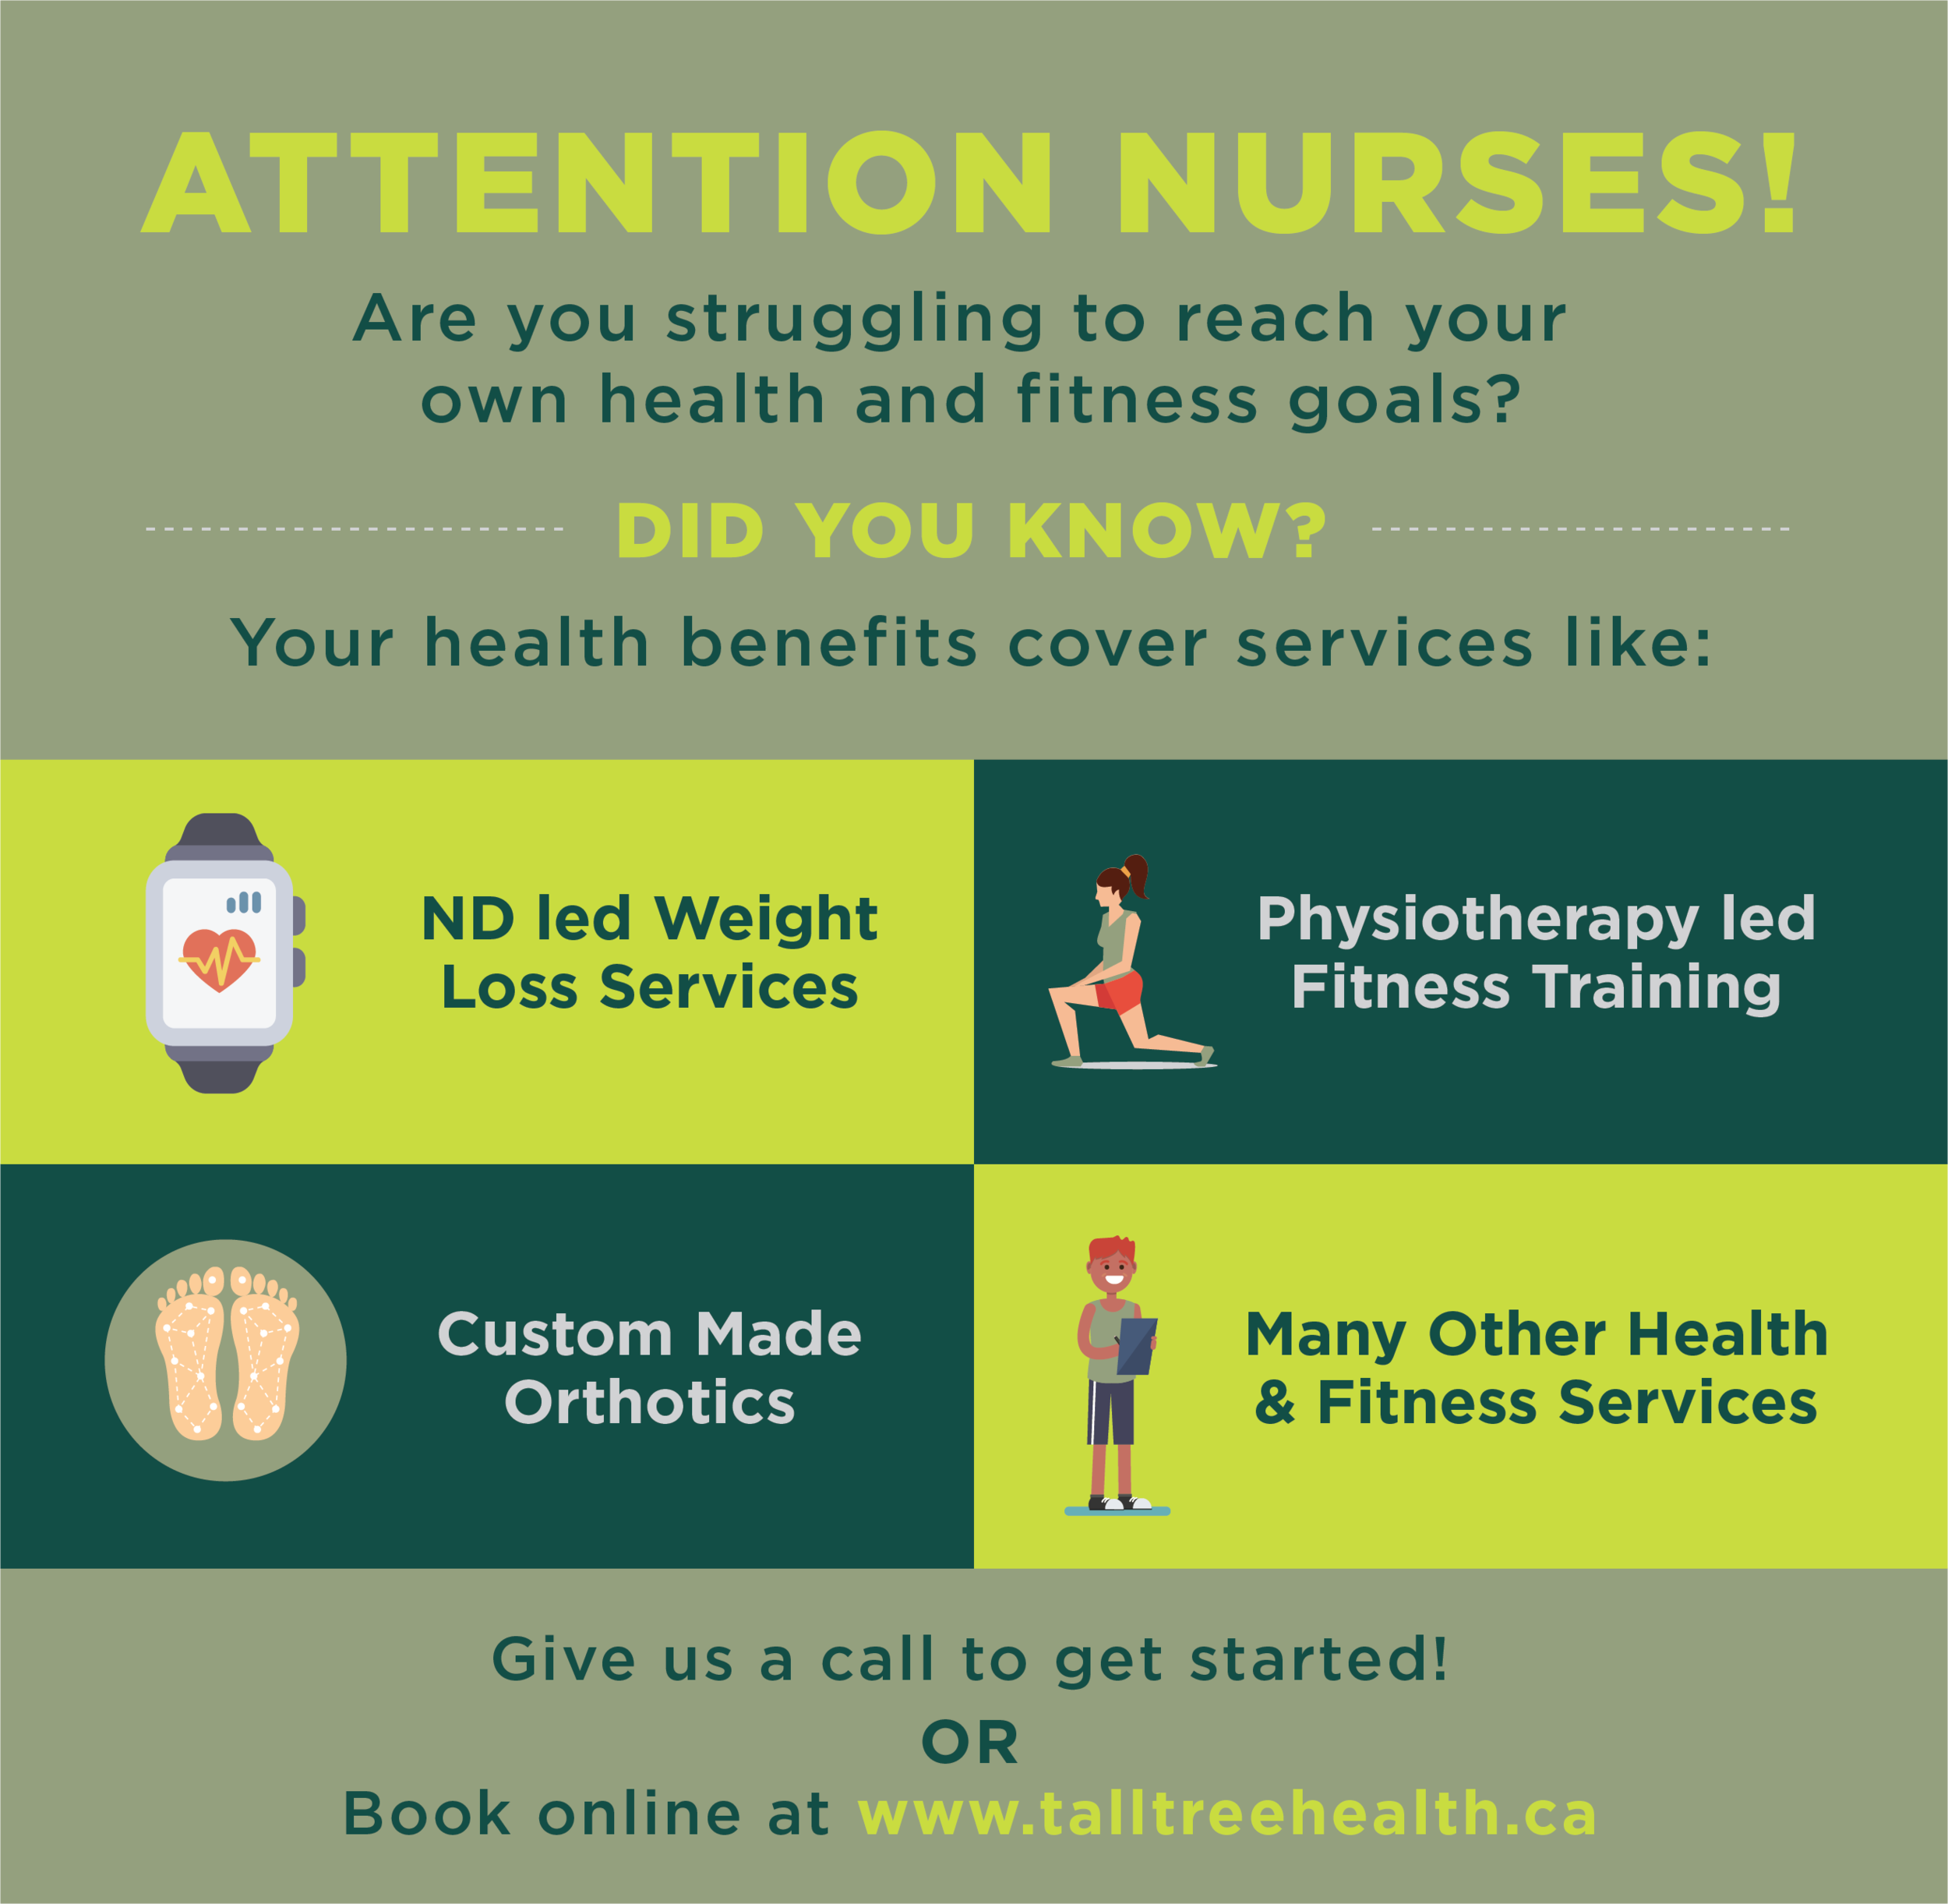 NursesPoster_Revised - web.png